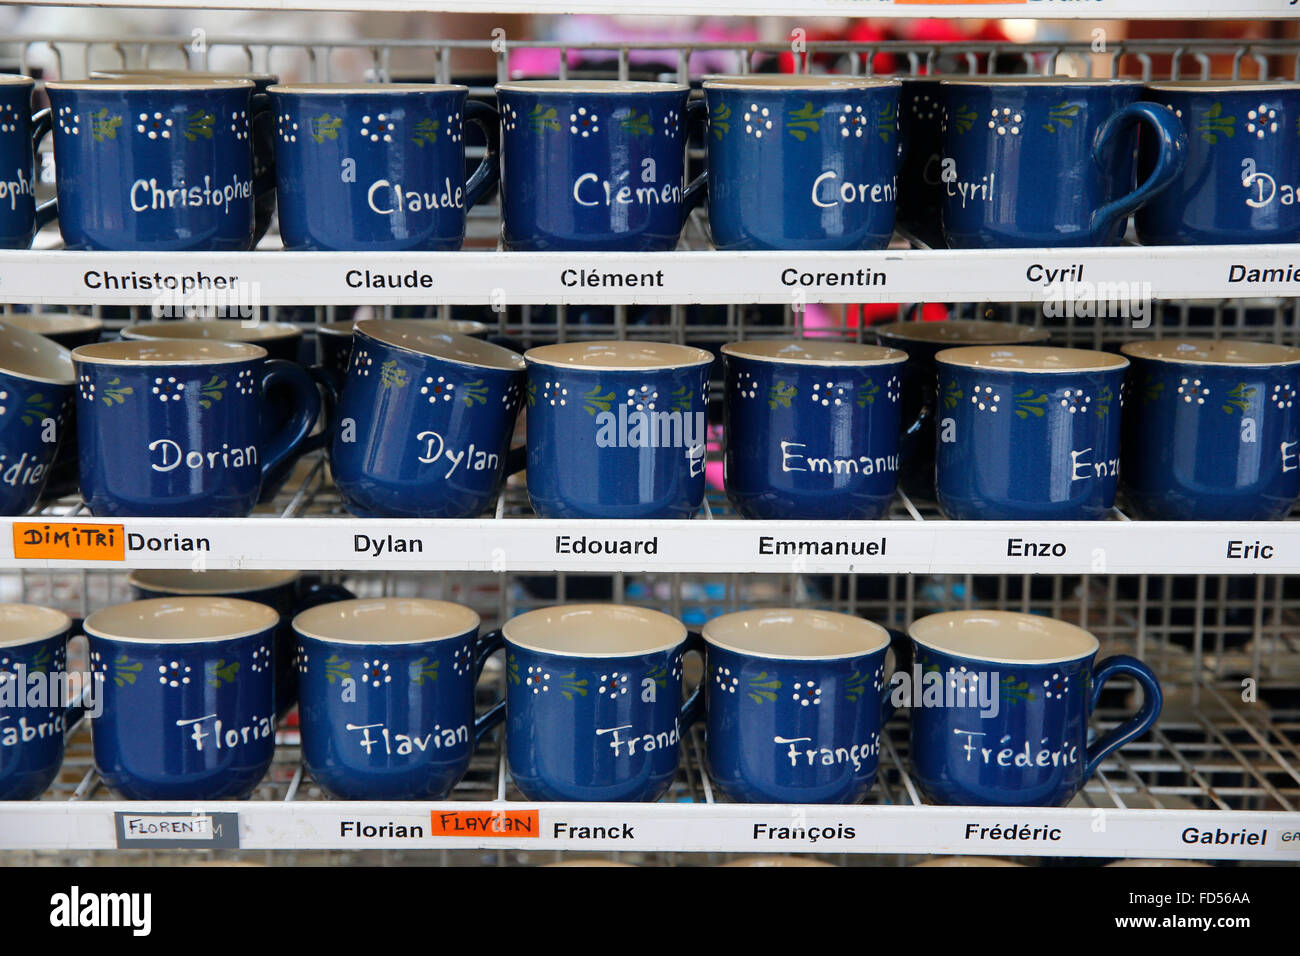 Name-bearing cups. - Stock Image